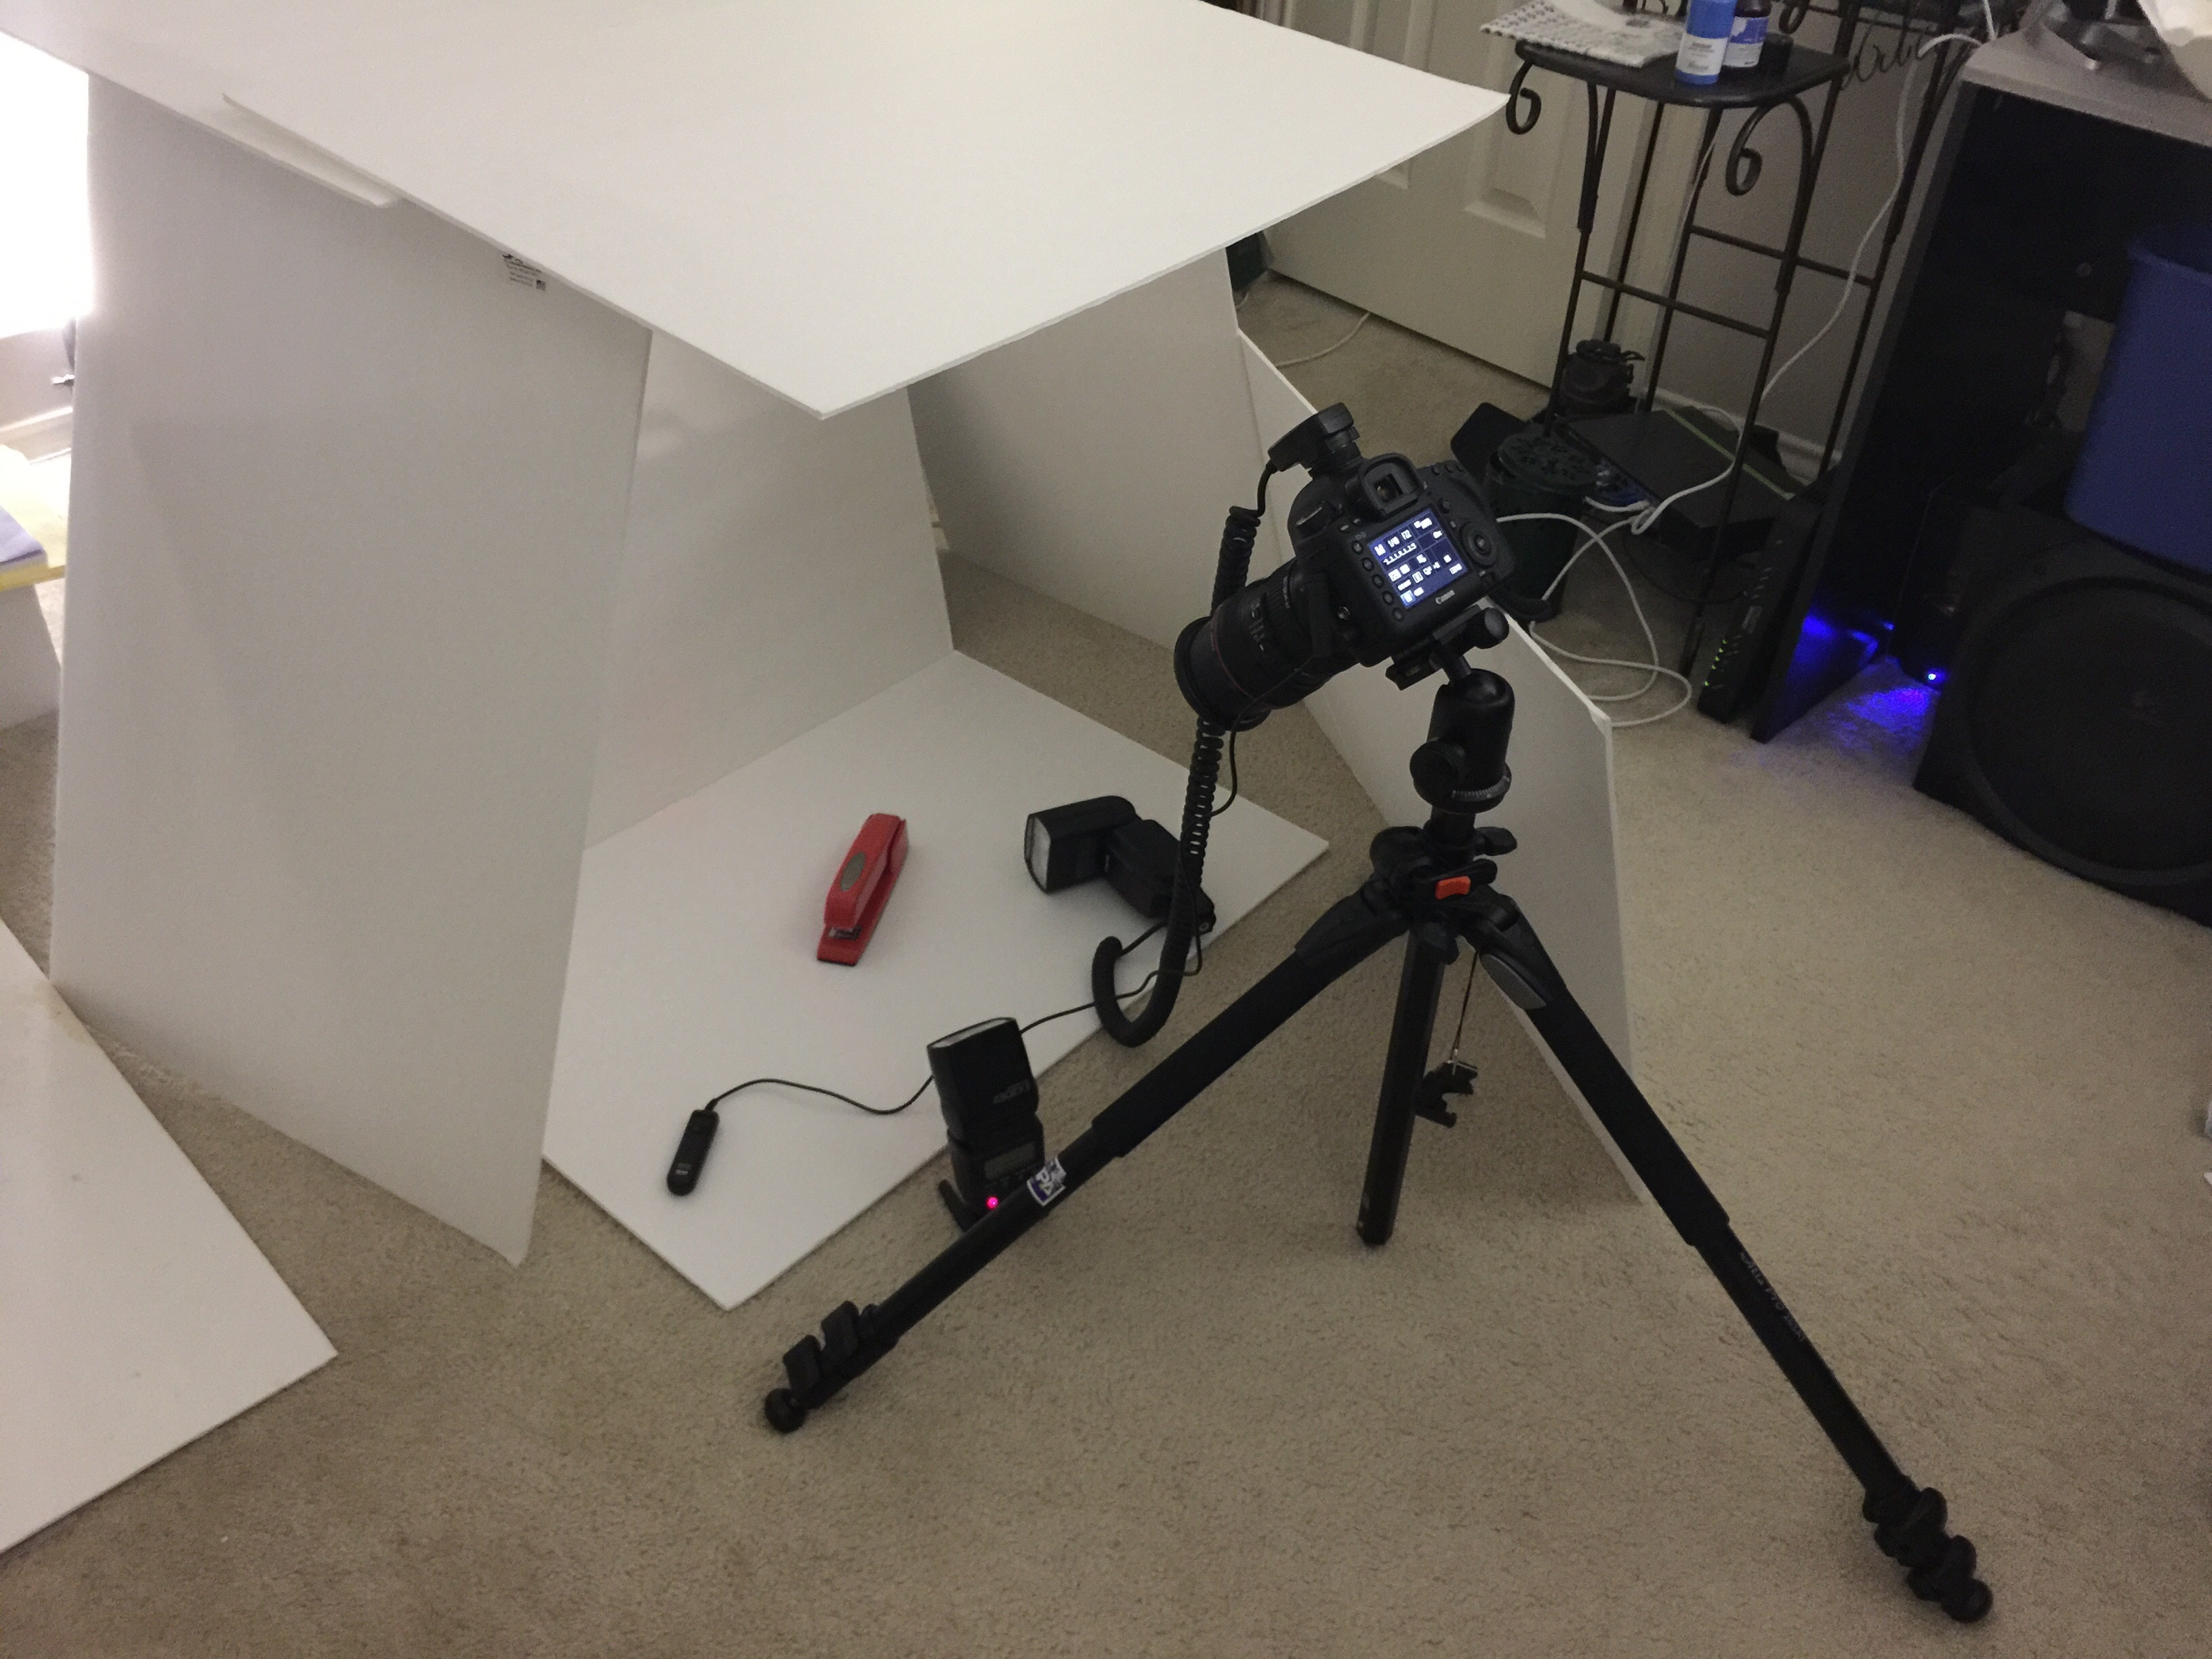 My make-shift product photography studio. This is generally what I do for any review product I photograph for Ars—build a light-bouncing fort of posterboard on the floor next to my desk and go to town. (Photo taken with the iPhone 6 Plus.)